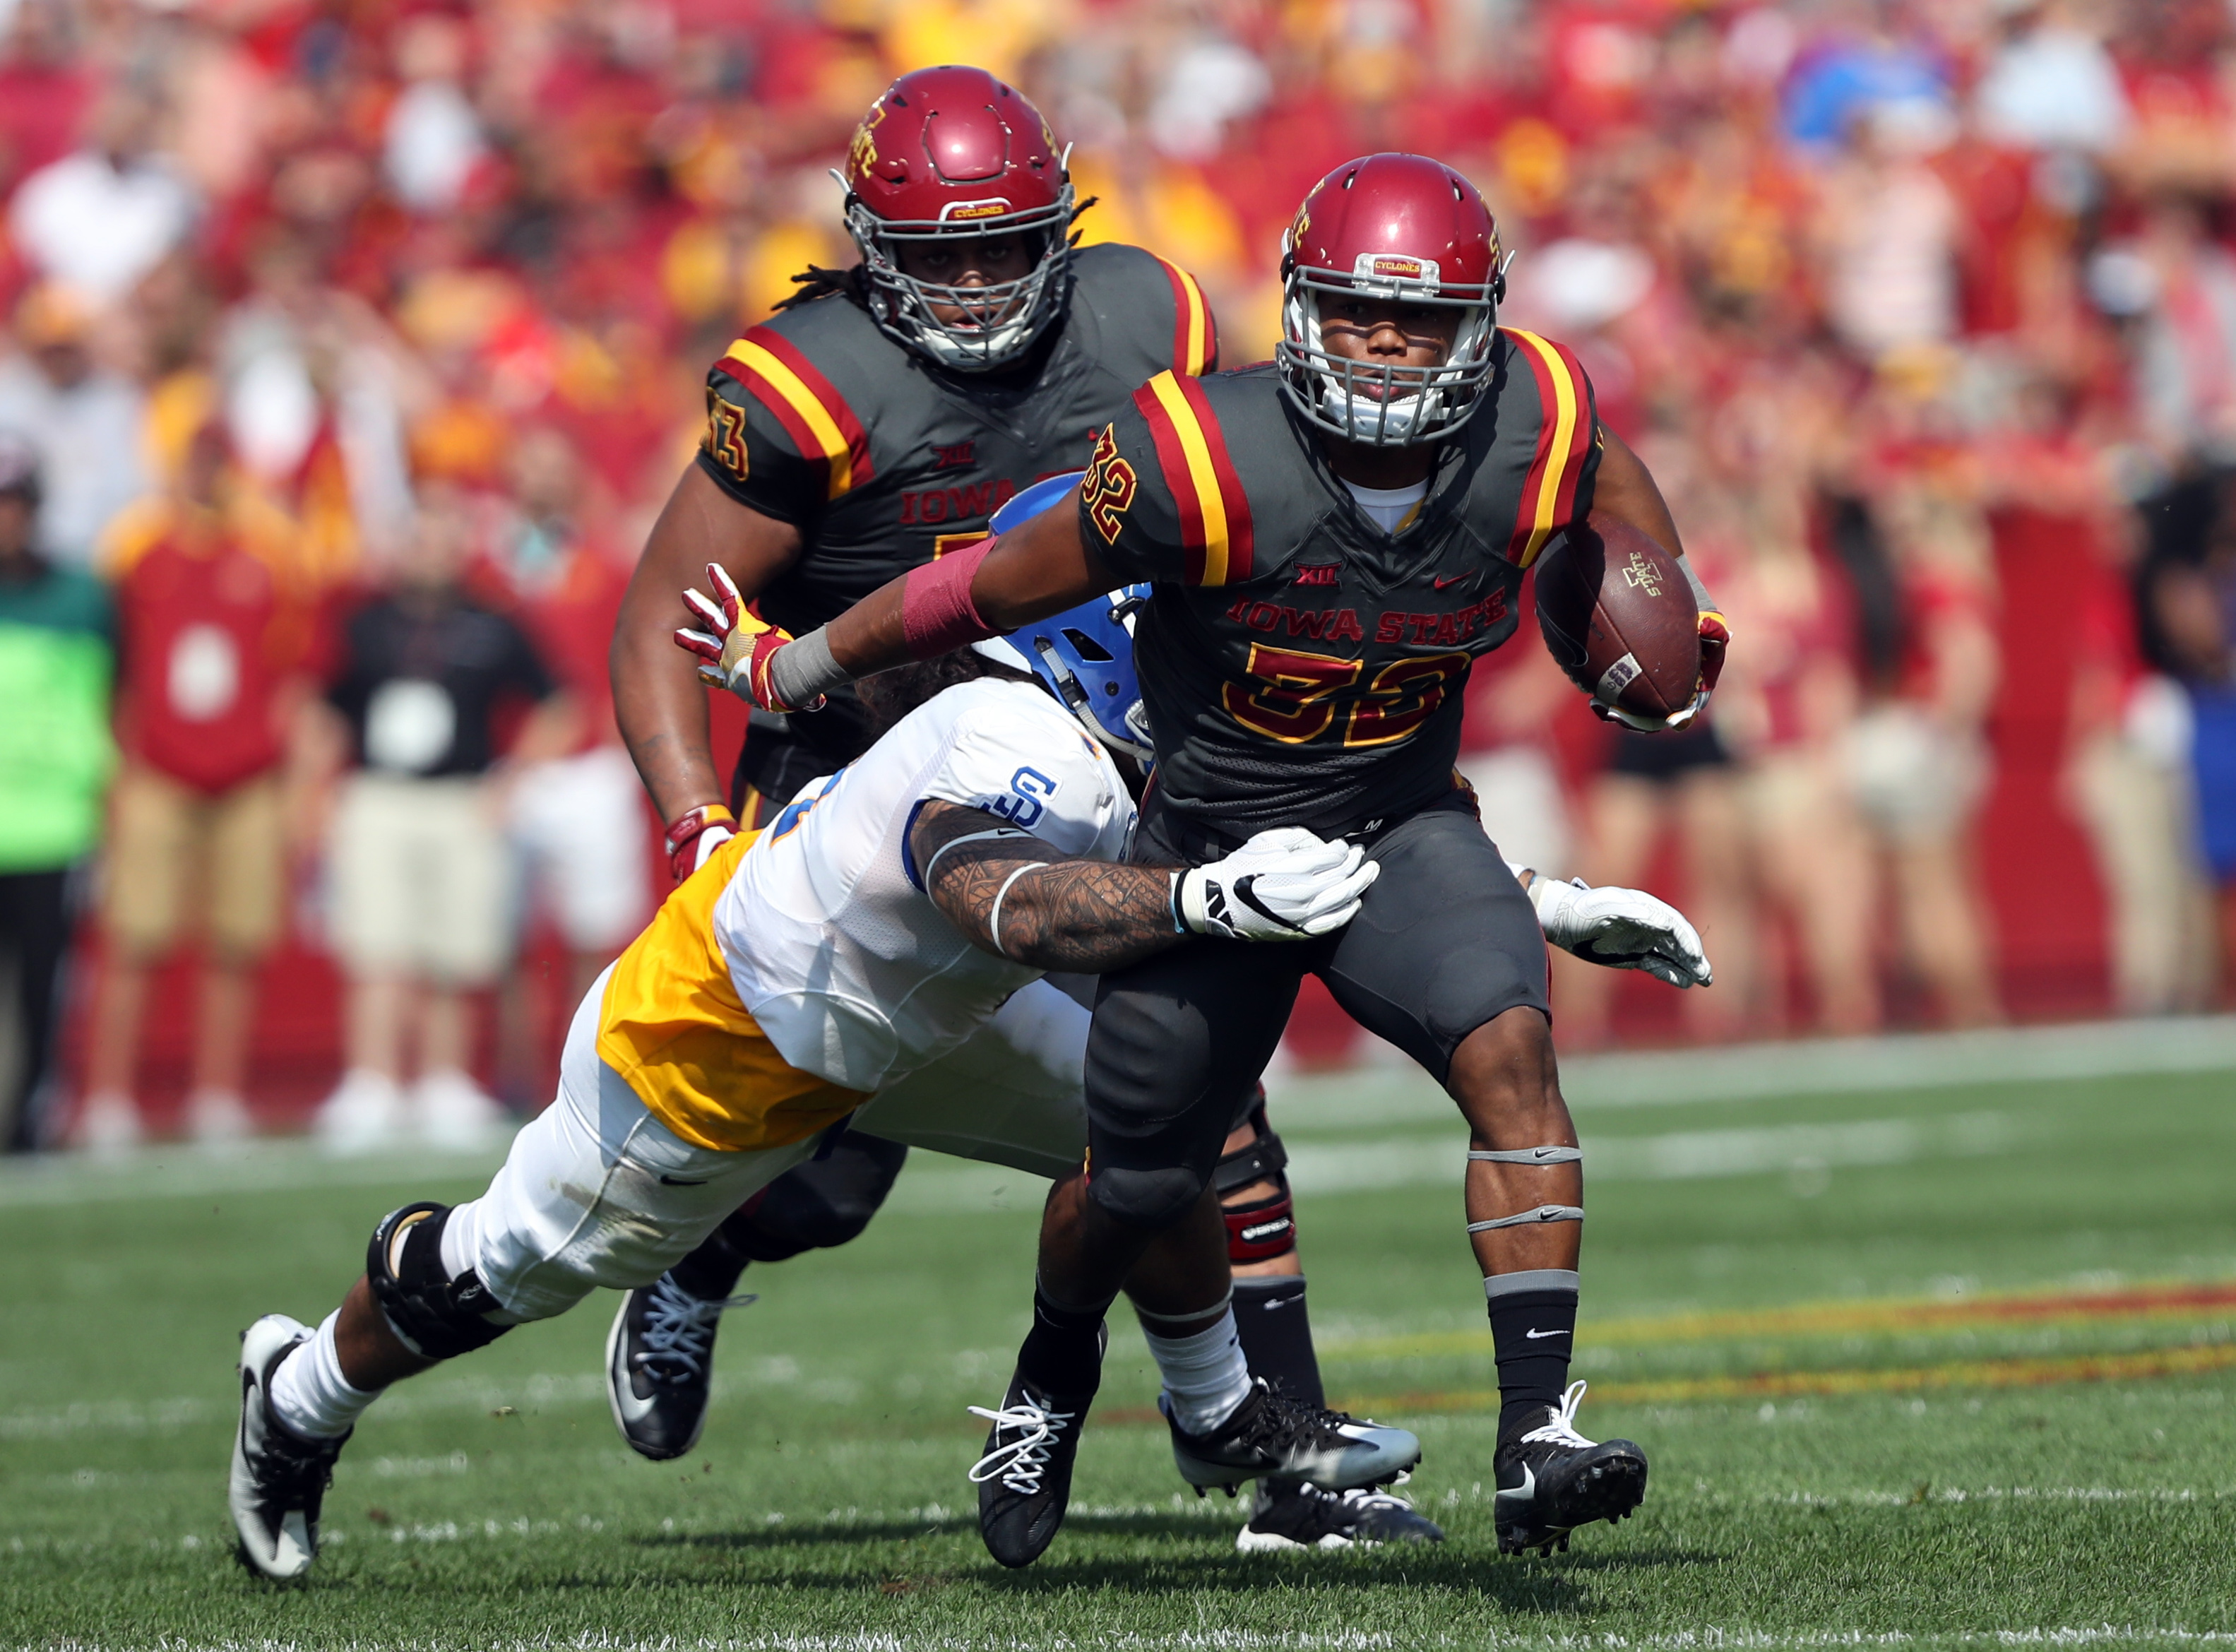 Sep 24, 2016; Ames, IA, USA; Iowa State Cyclones running back David Montgomery (32) carries the football against the San Jose State Spartans at Jack Trice Stadium. Mandatory Credit: Reese Strickland-USA TODAY Sports